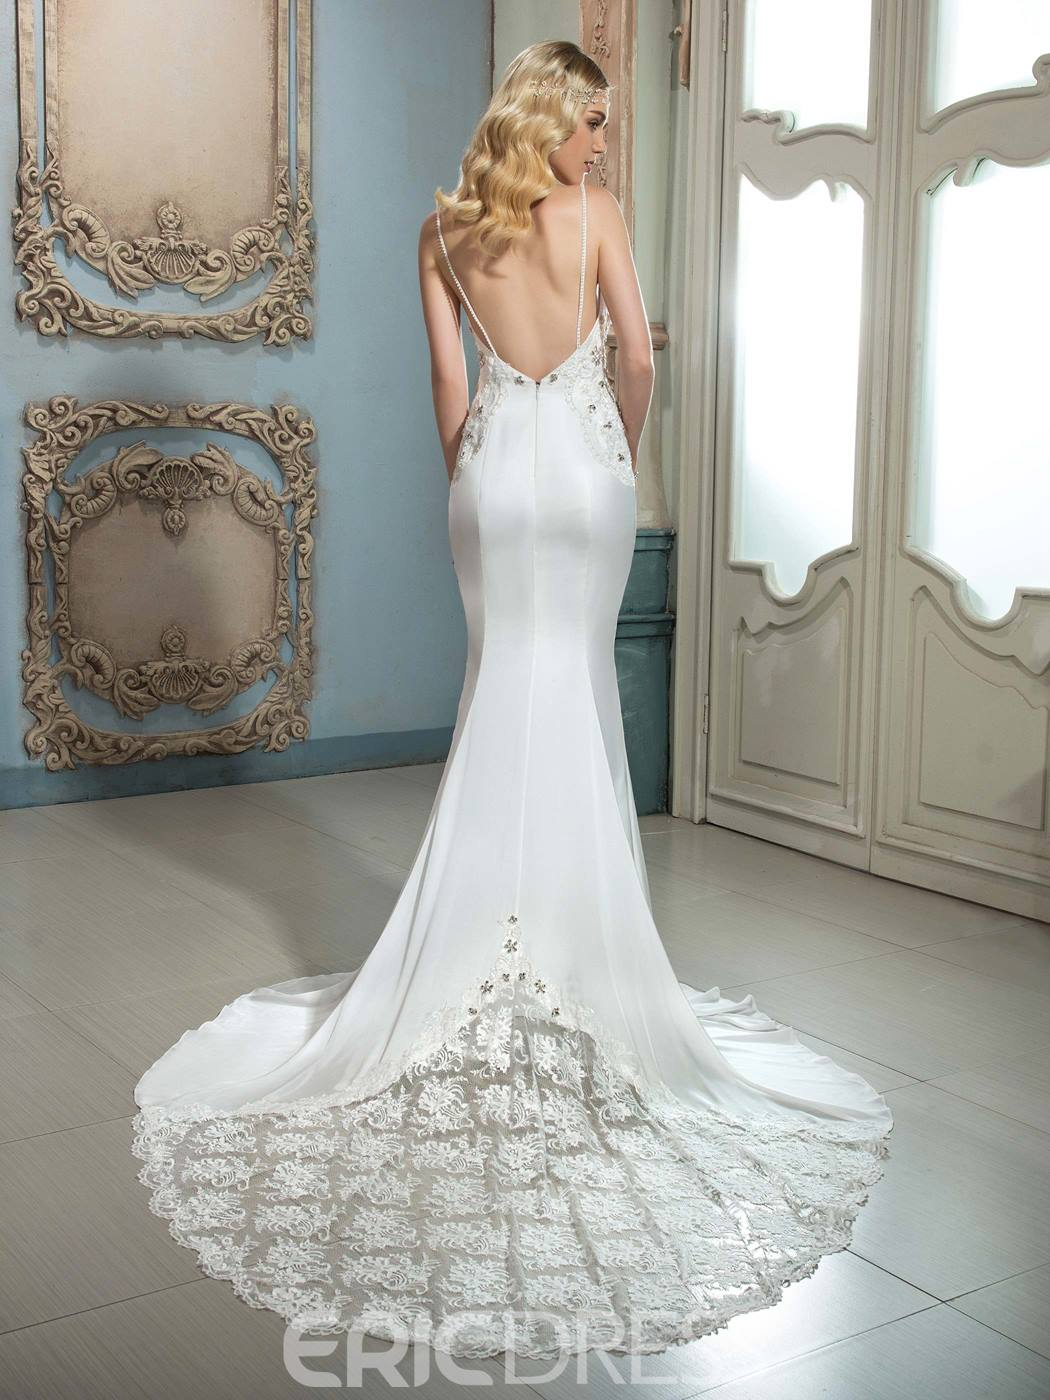 Ericdress Amazing Spaghetti Straps Hollow Mermaid Wedding Dress